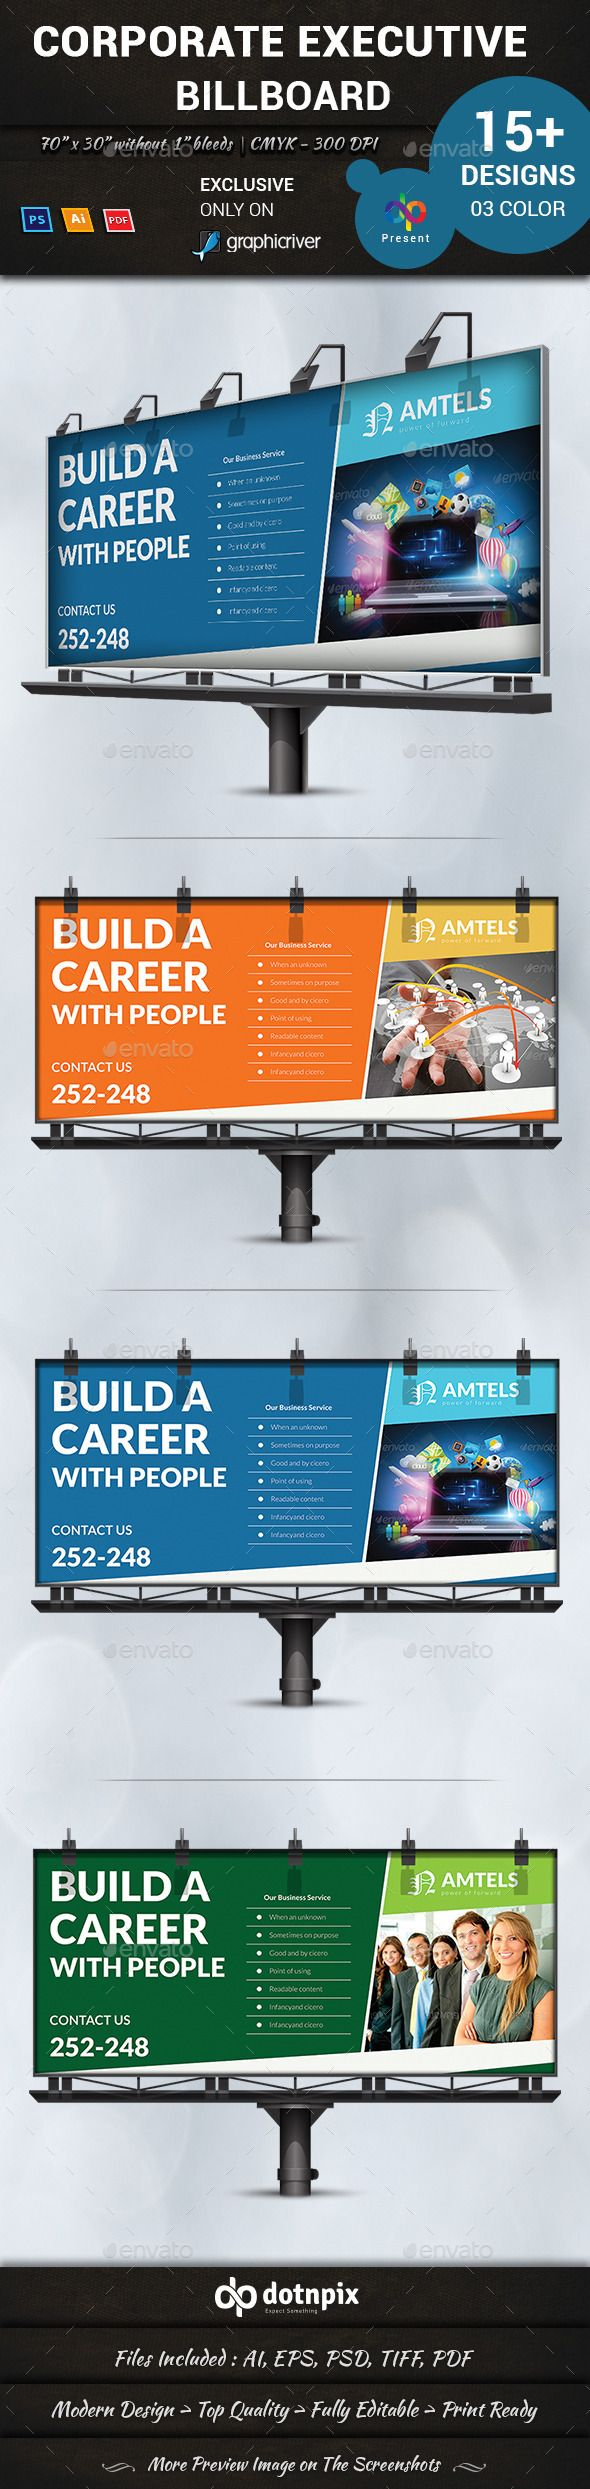 1000 ideas about billboard design on pinterest cannes